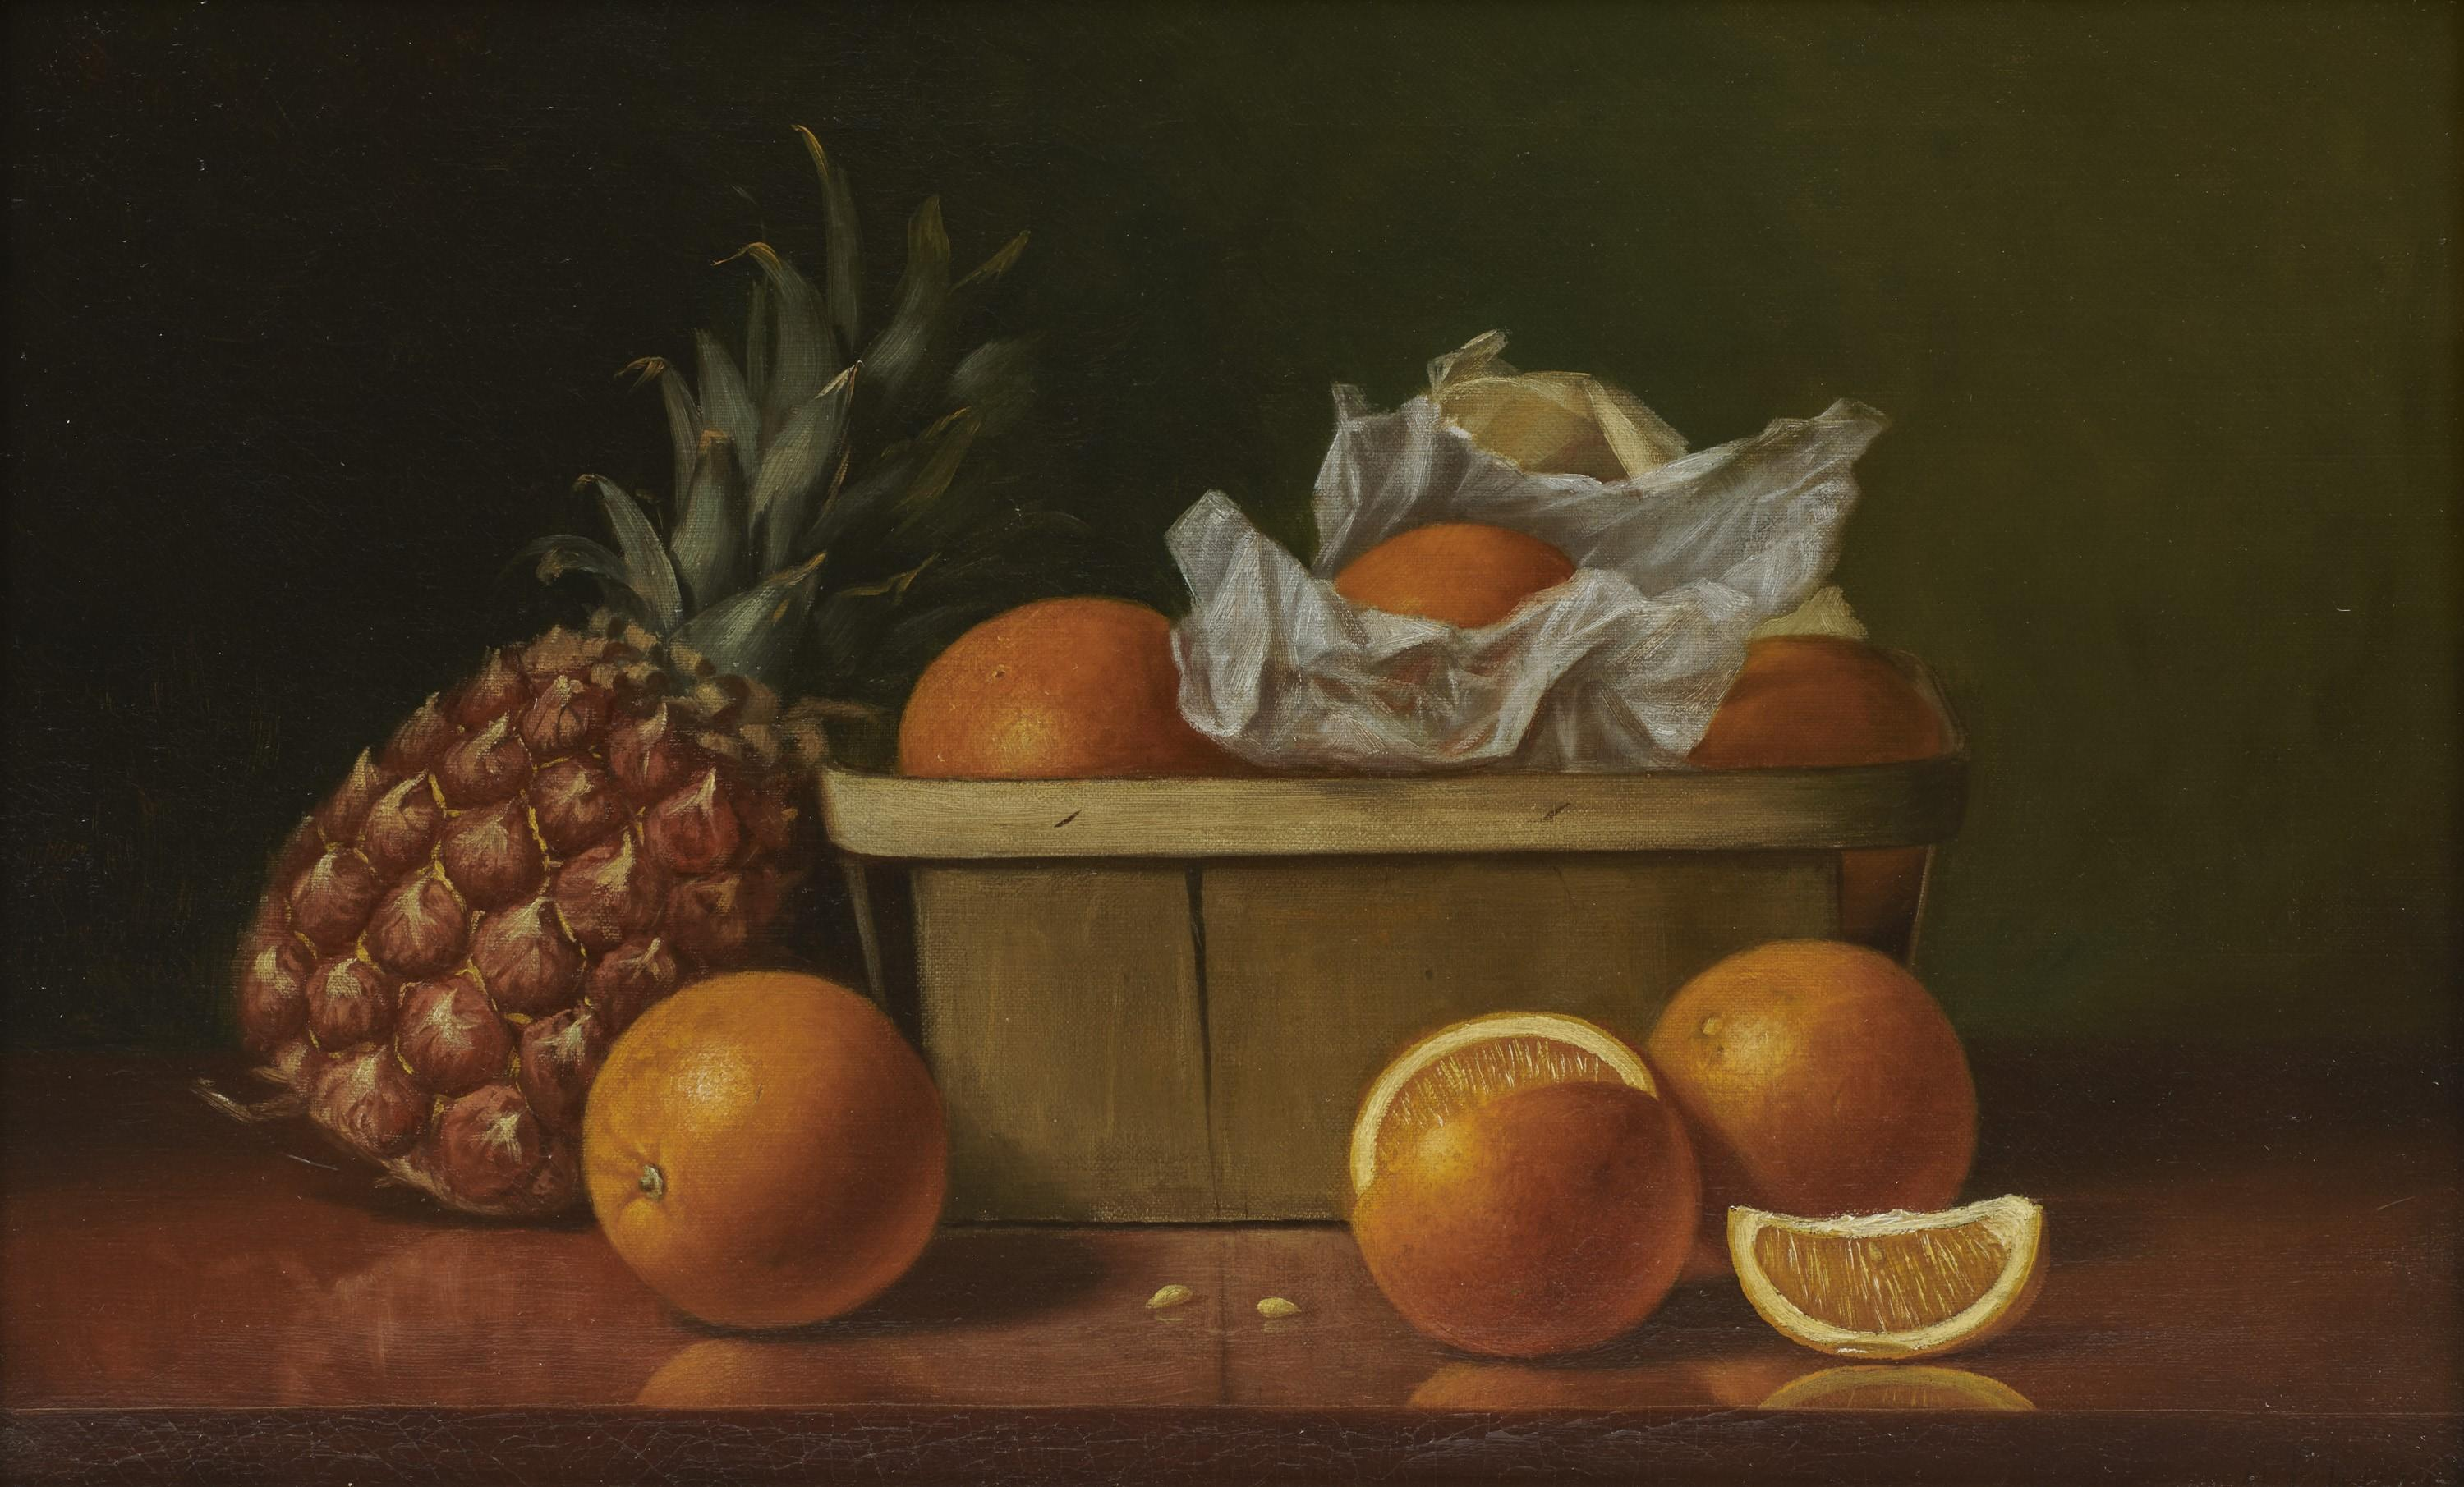 ALBERT FRANCIS KING, (American, 1854-1945), Still Life with Oranges and Pineapple, oil on canvas, 14 x 22 in., frame: 20 x 28 in.